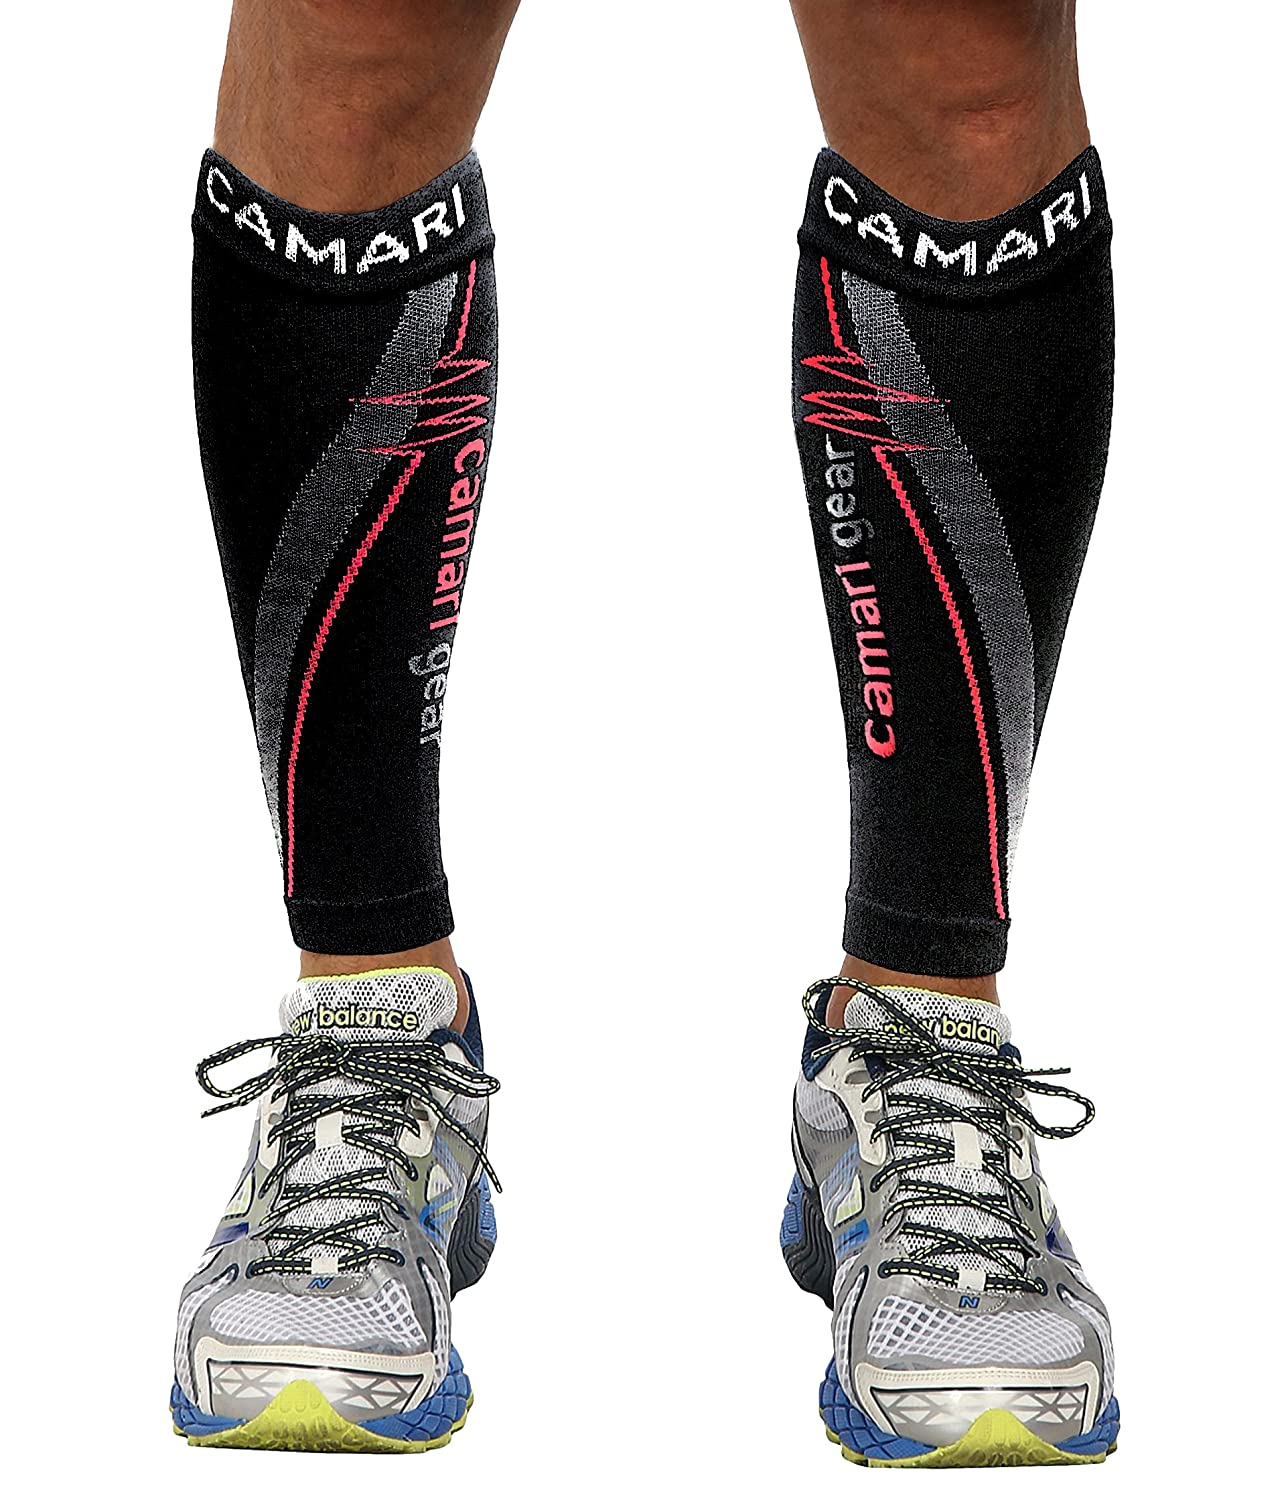 Camari Gear Sports Run and Recover Manchons de Compression pour Les Mollets - Hommes et Femmes - Noir - Compression Sports Calf Sleeves - Black - for Running, Cycling, Triathlon, Crossfit, Gym